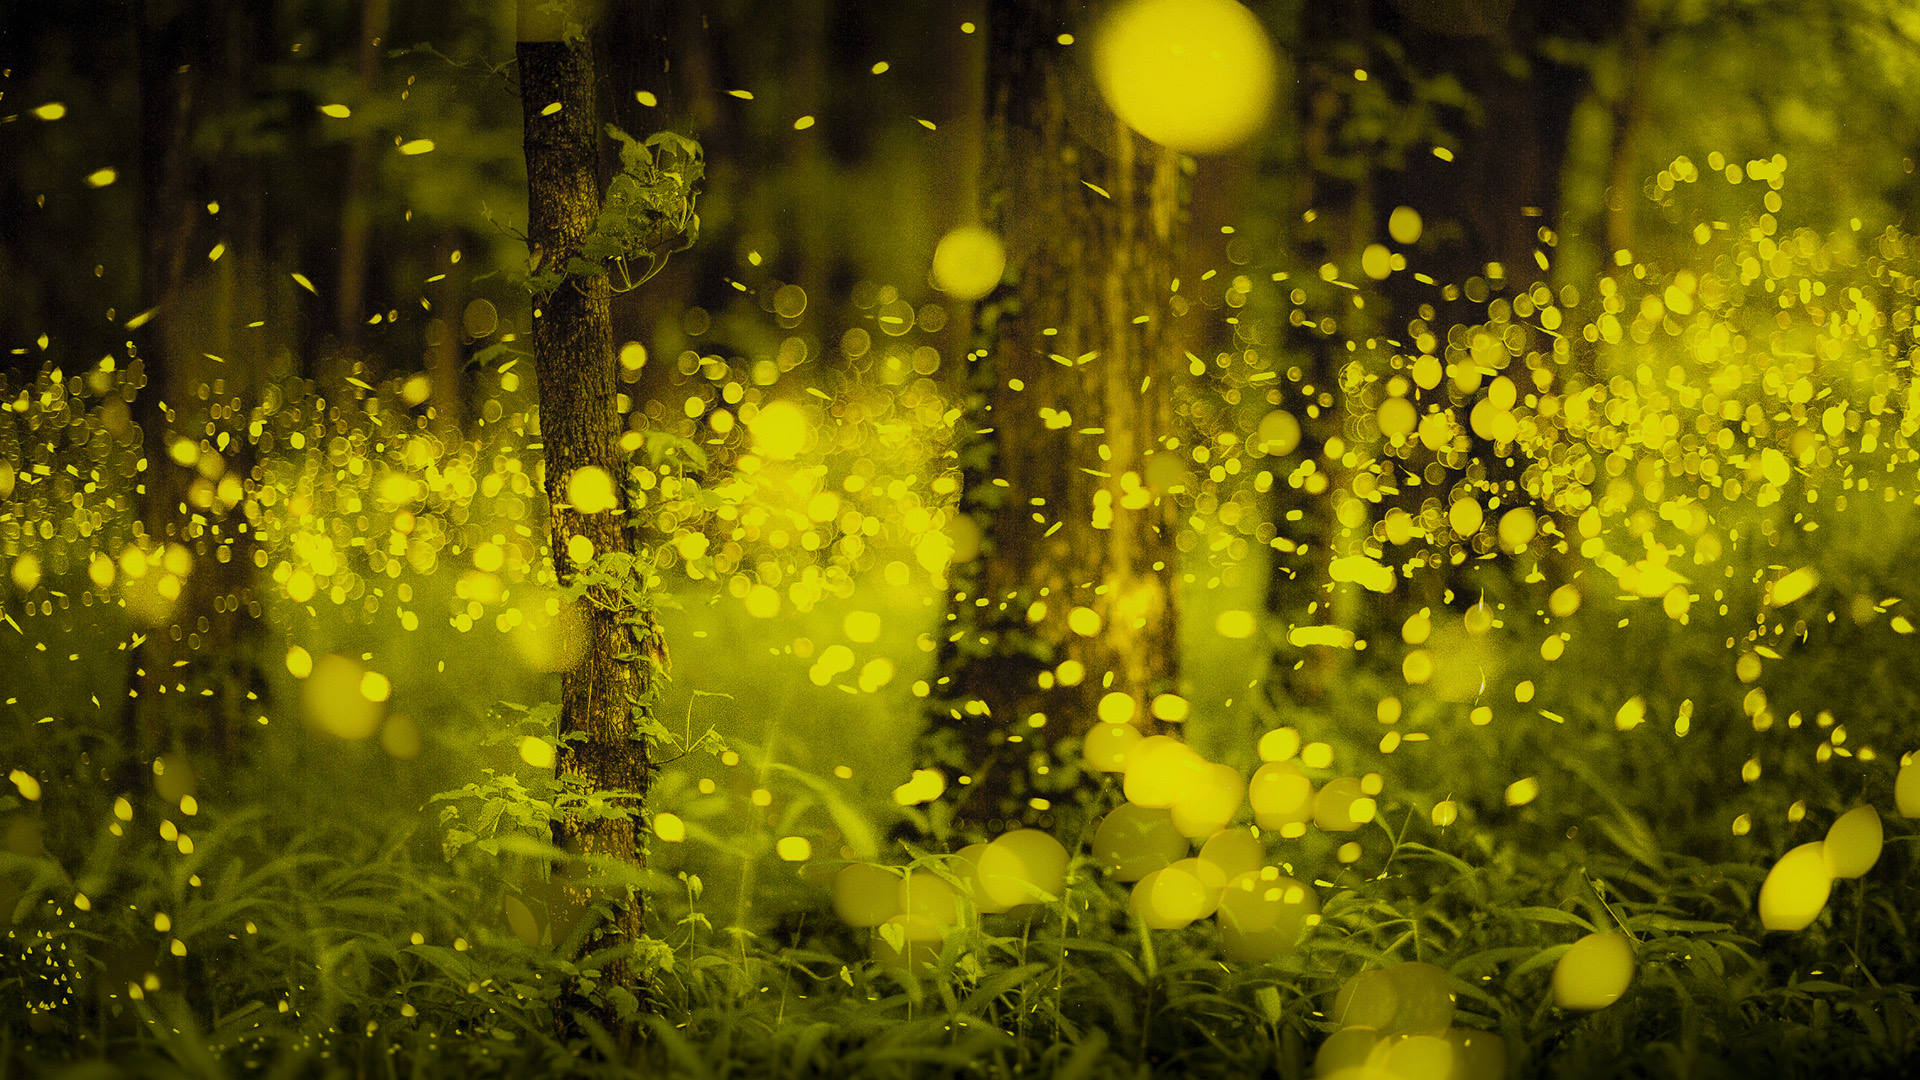 firefly (insect)